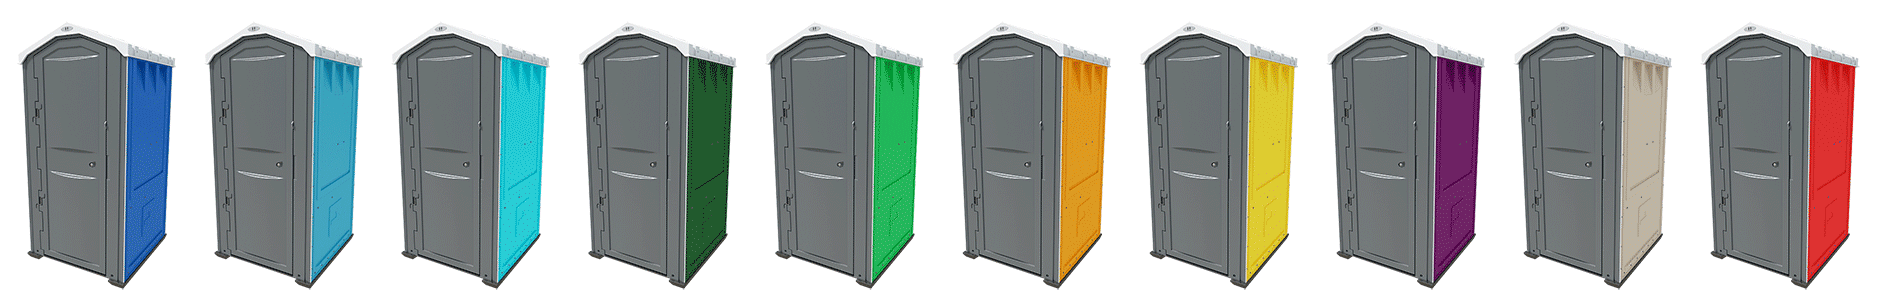 Portable toilets for sale in 10 colours